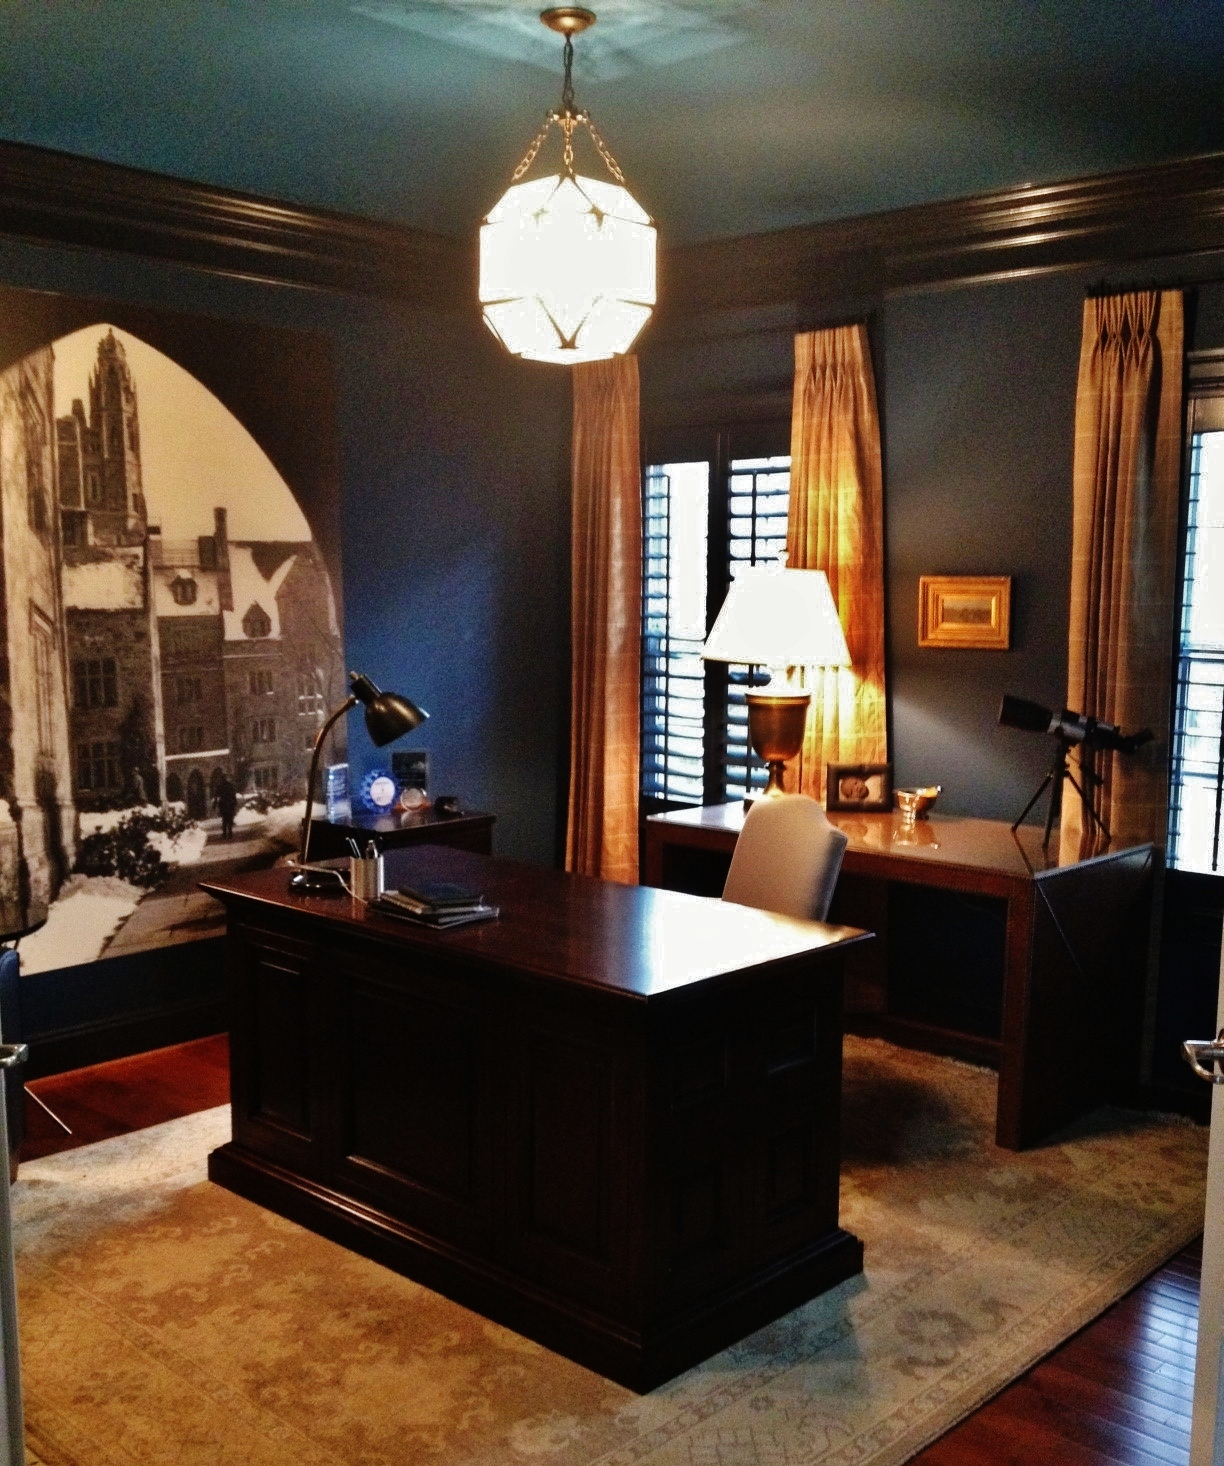 11 Cool Home Office Ideas For Men: A Man's Surprise Office: Before & After